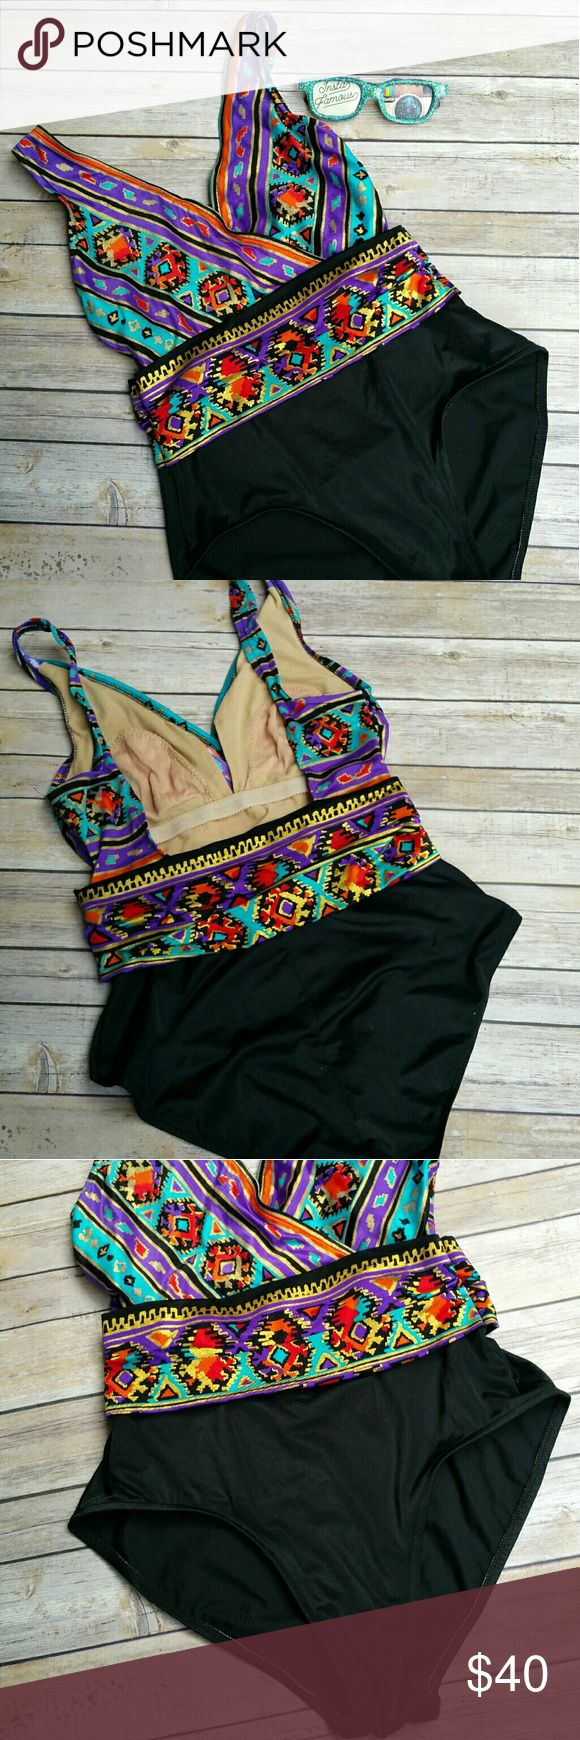 """Vintage Hi Cut One Piece Gorgeous Tribal Swimsuit Catalina Vintage vneck with low back one piece swim suit in bold bright colors and a tribal pattern .  Pattern is outlined with inca gold metallic color. This suit is in excellent condition.Band across middle wraps around back as well. Hi cut on the thigh leg openings. Lining is NOT padded and is simple nude in color as shown. This suit is tagged size 12.Vintage Runs Small. Measurements : Length shoulder to crotch 27 1/2"""" 13 across front…"""